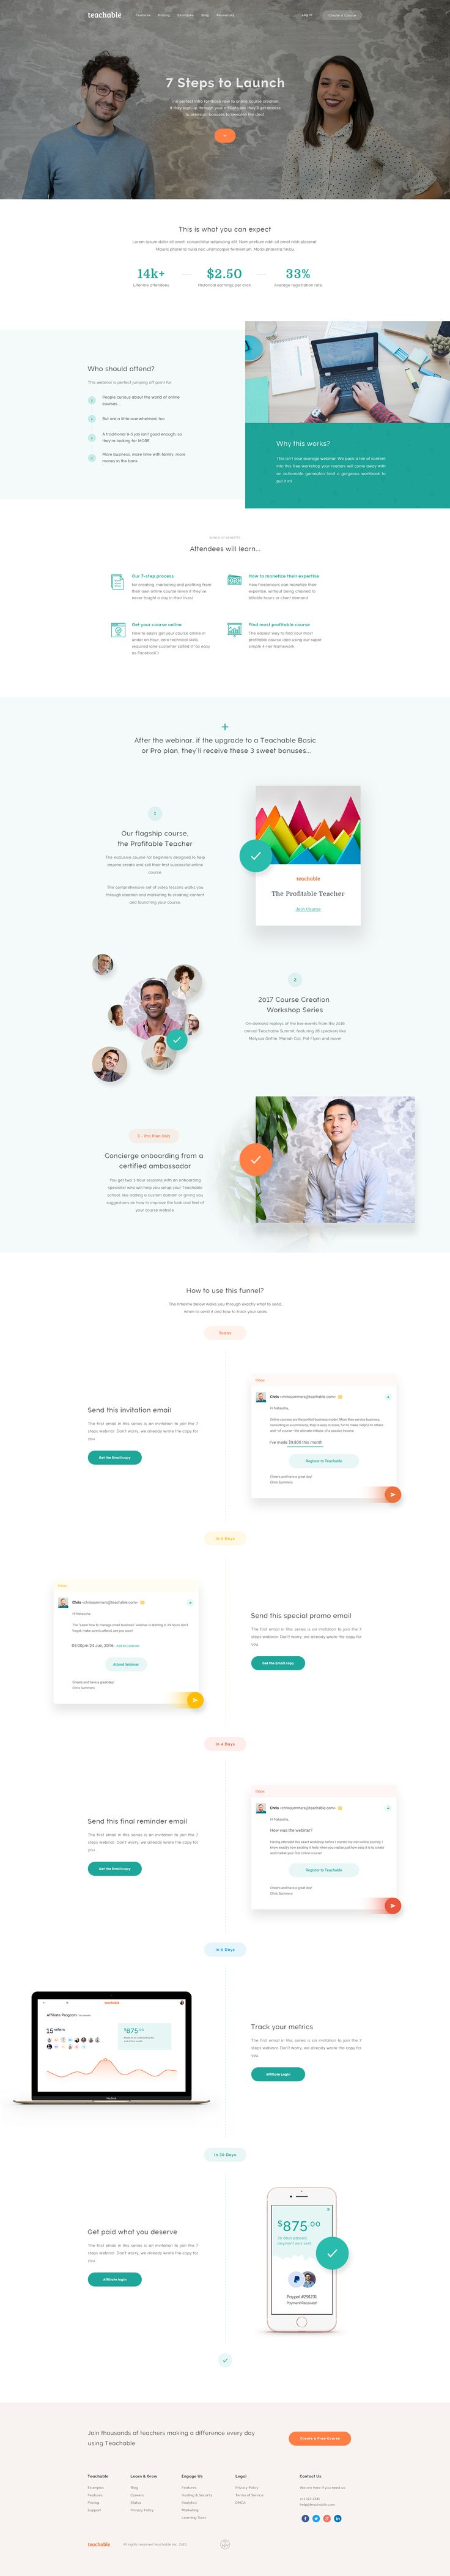 Teachable Landing Page - Web Design Inspiration - Green, Orange